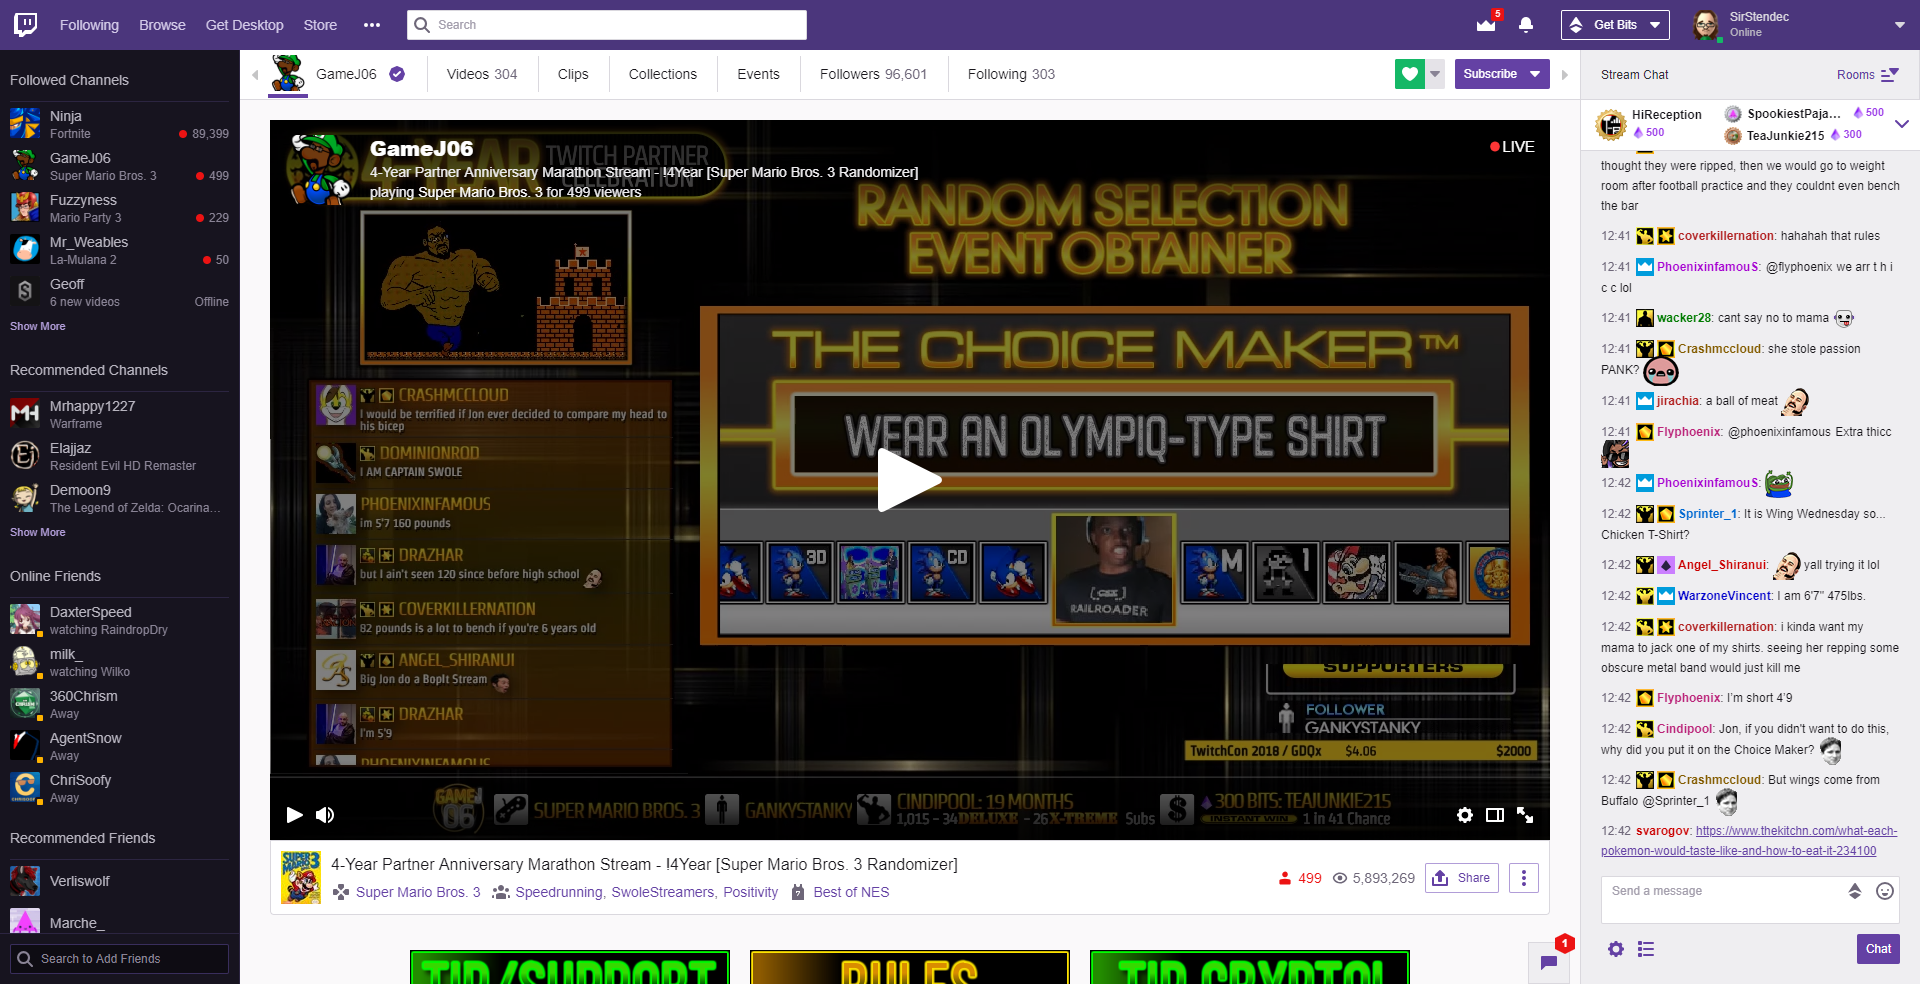 Twitch S New Channel Layout Mike Medium